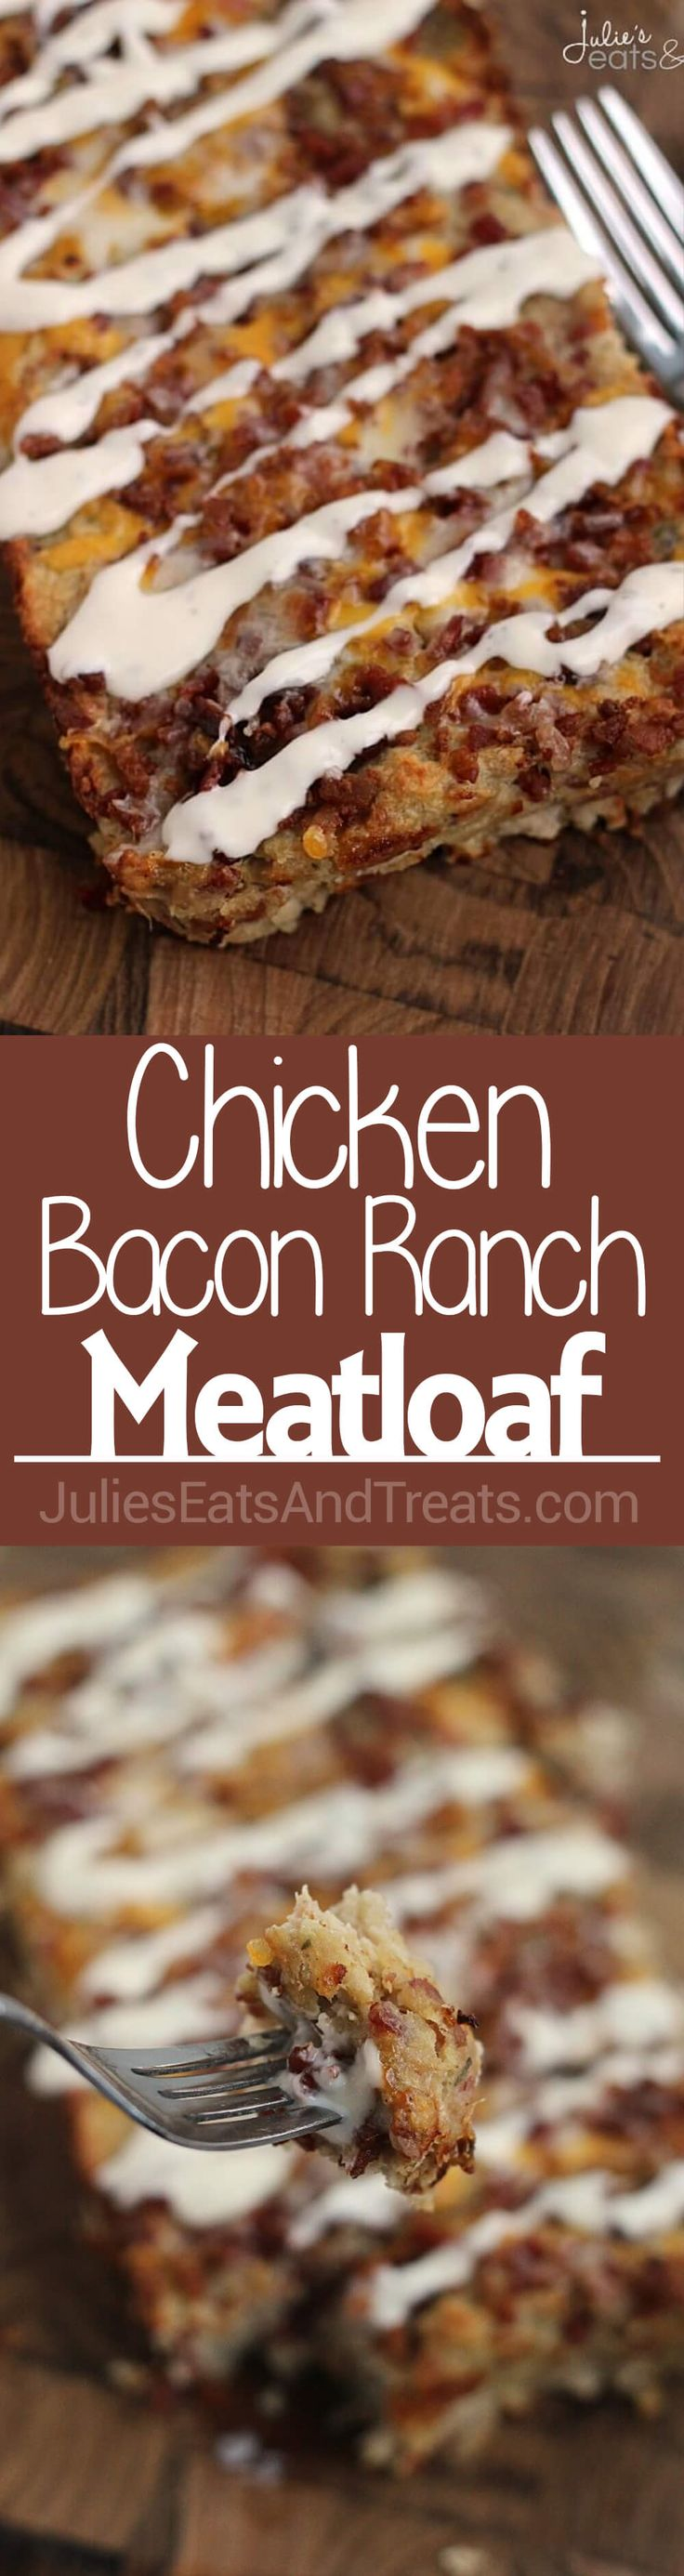 Chicken Bacon Ranch Meatloaf ~ Delicious, Easy, Comfort Food! Loaded with Chicken, Bacon, Cheese and Ranch! ~ http://www.julieseatsandtreats.com